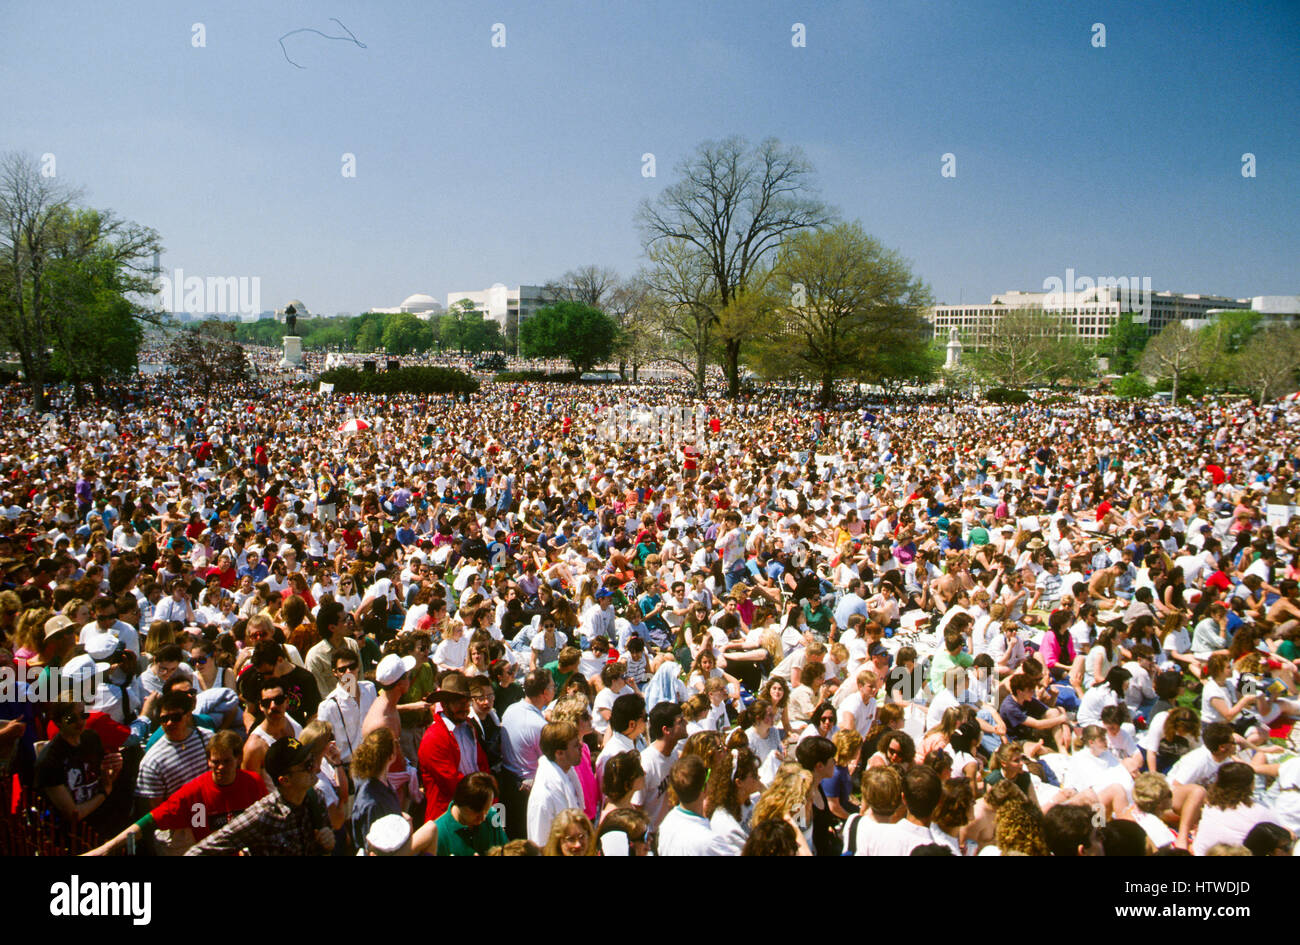 The Earth Day rally on the west front of the US Capitol the crowd of about 350,000 people filled the capitol grounds - Stock Image